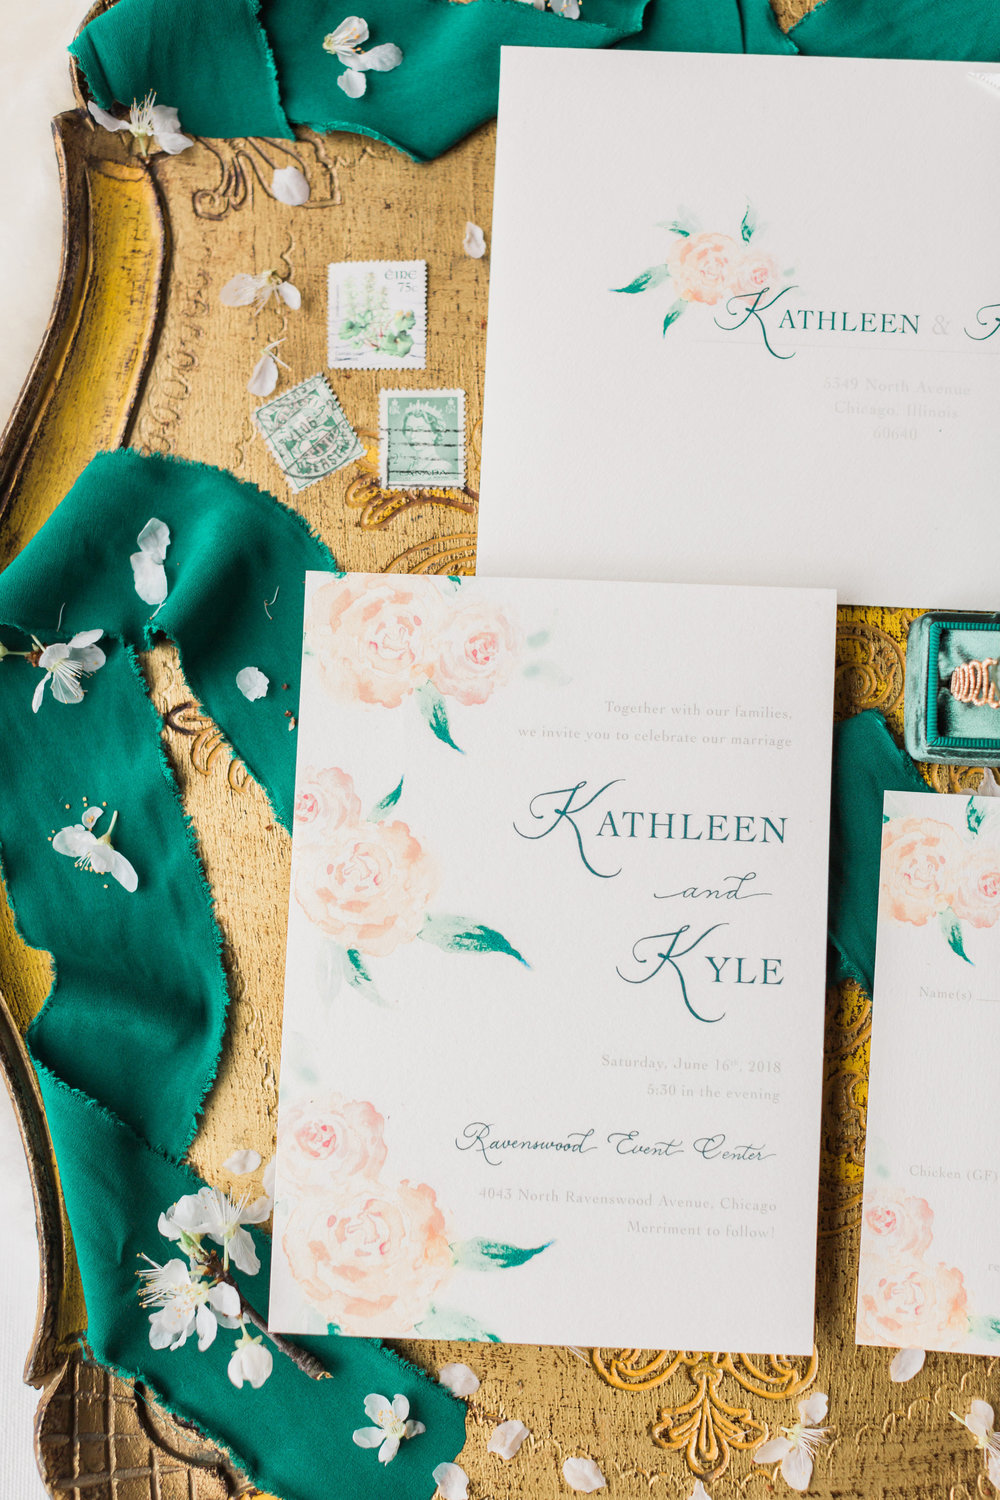 St. Patrick's Day inspired styled shoot at the Bridgeport Art Center, Chicago - planned by Once Upon a Wedding and captured by Tiffaney Childs. See more creative wedding ideas at CHItheeWED.com!